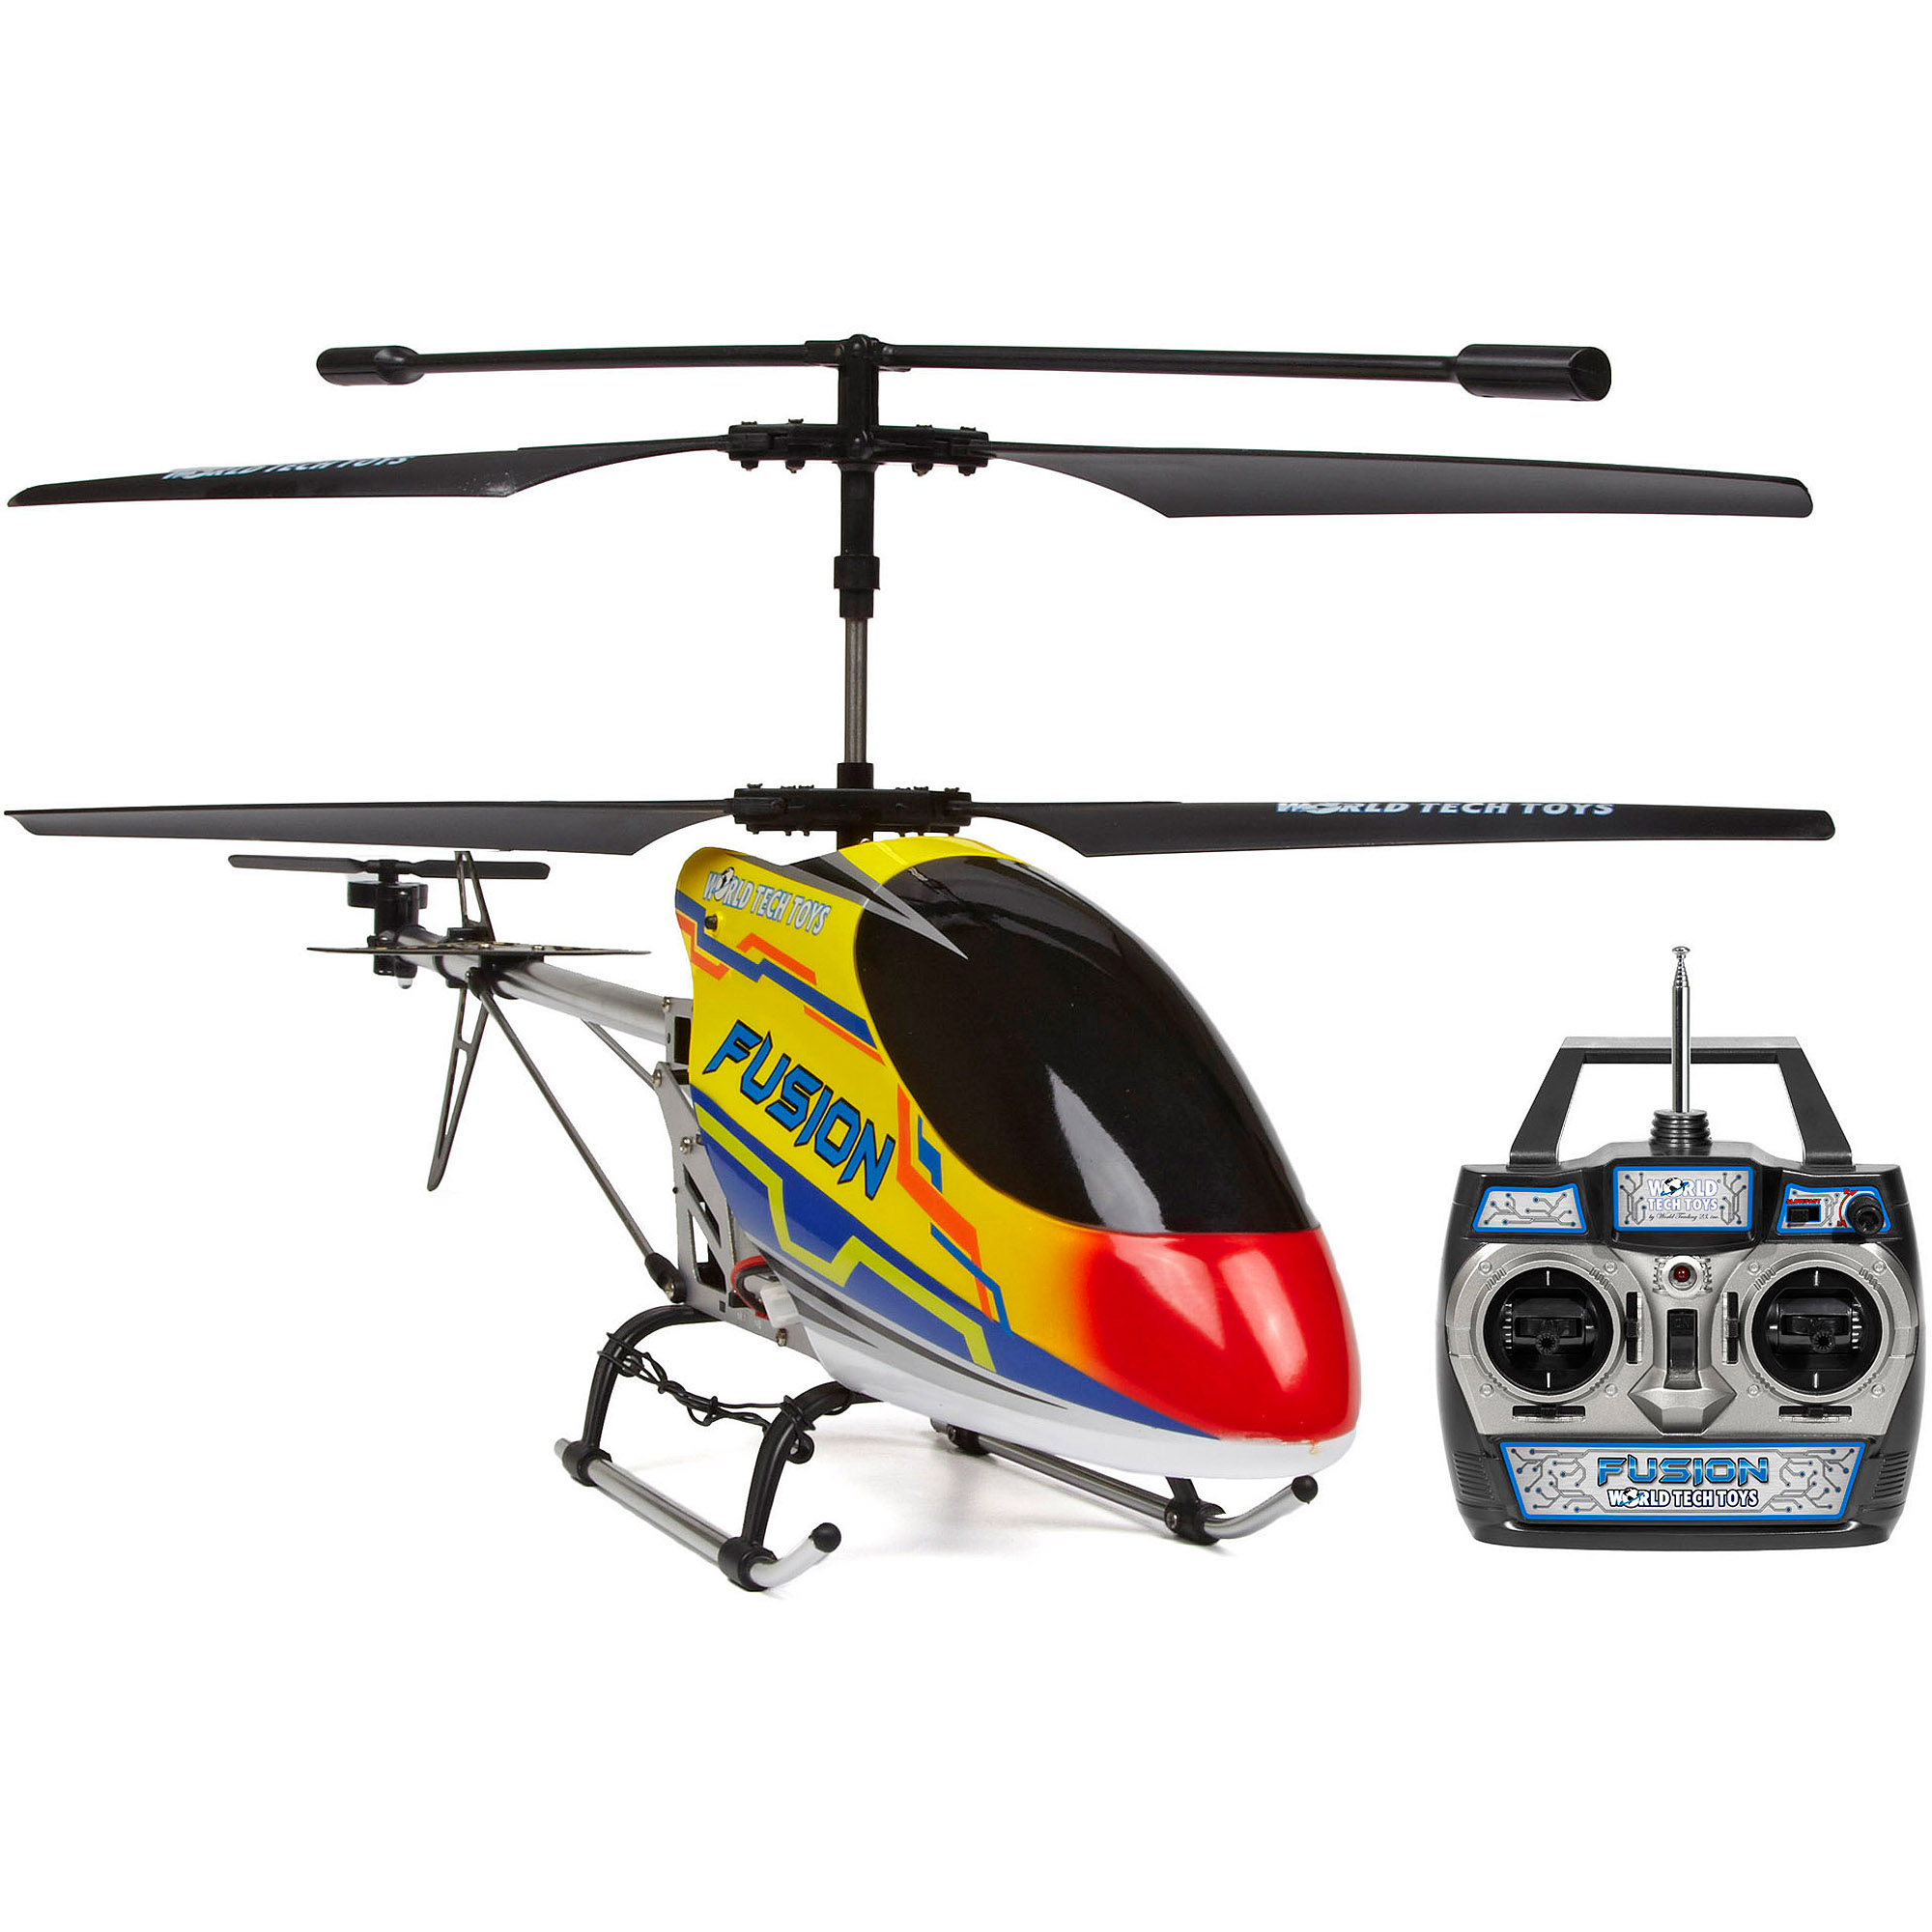 World Tech Toys Gyro Fusion 3 5ch Outdoor Rc Helicopter